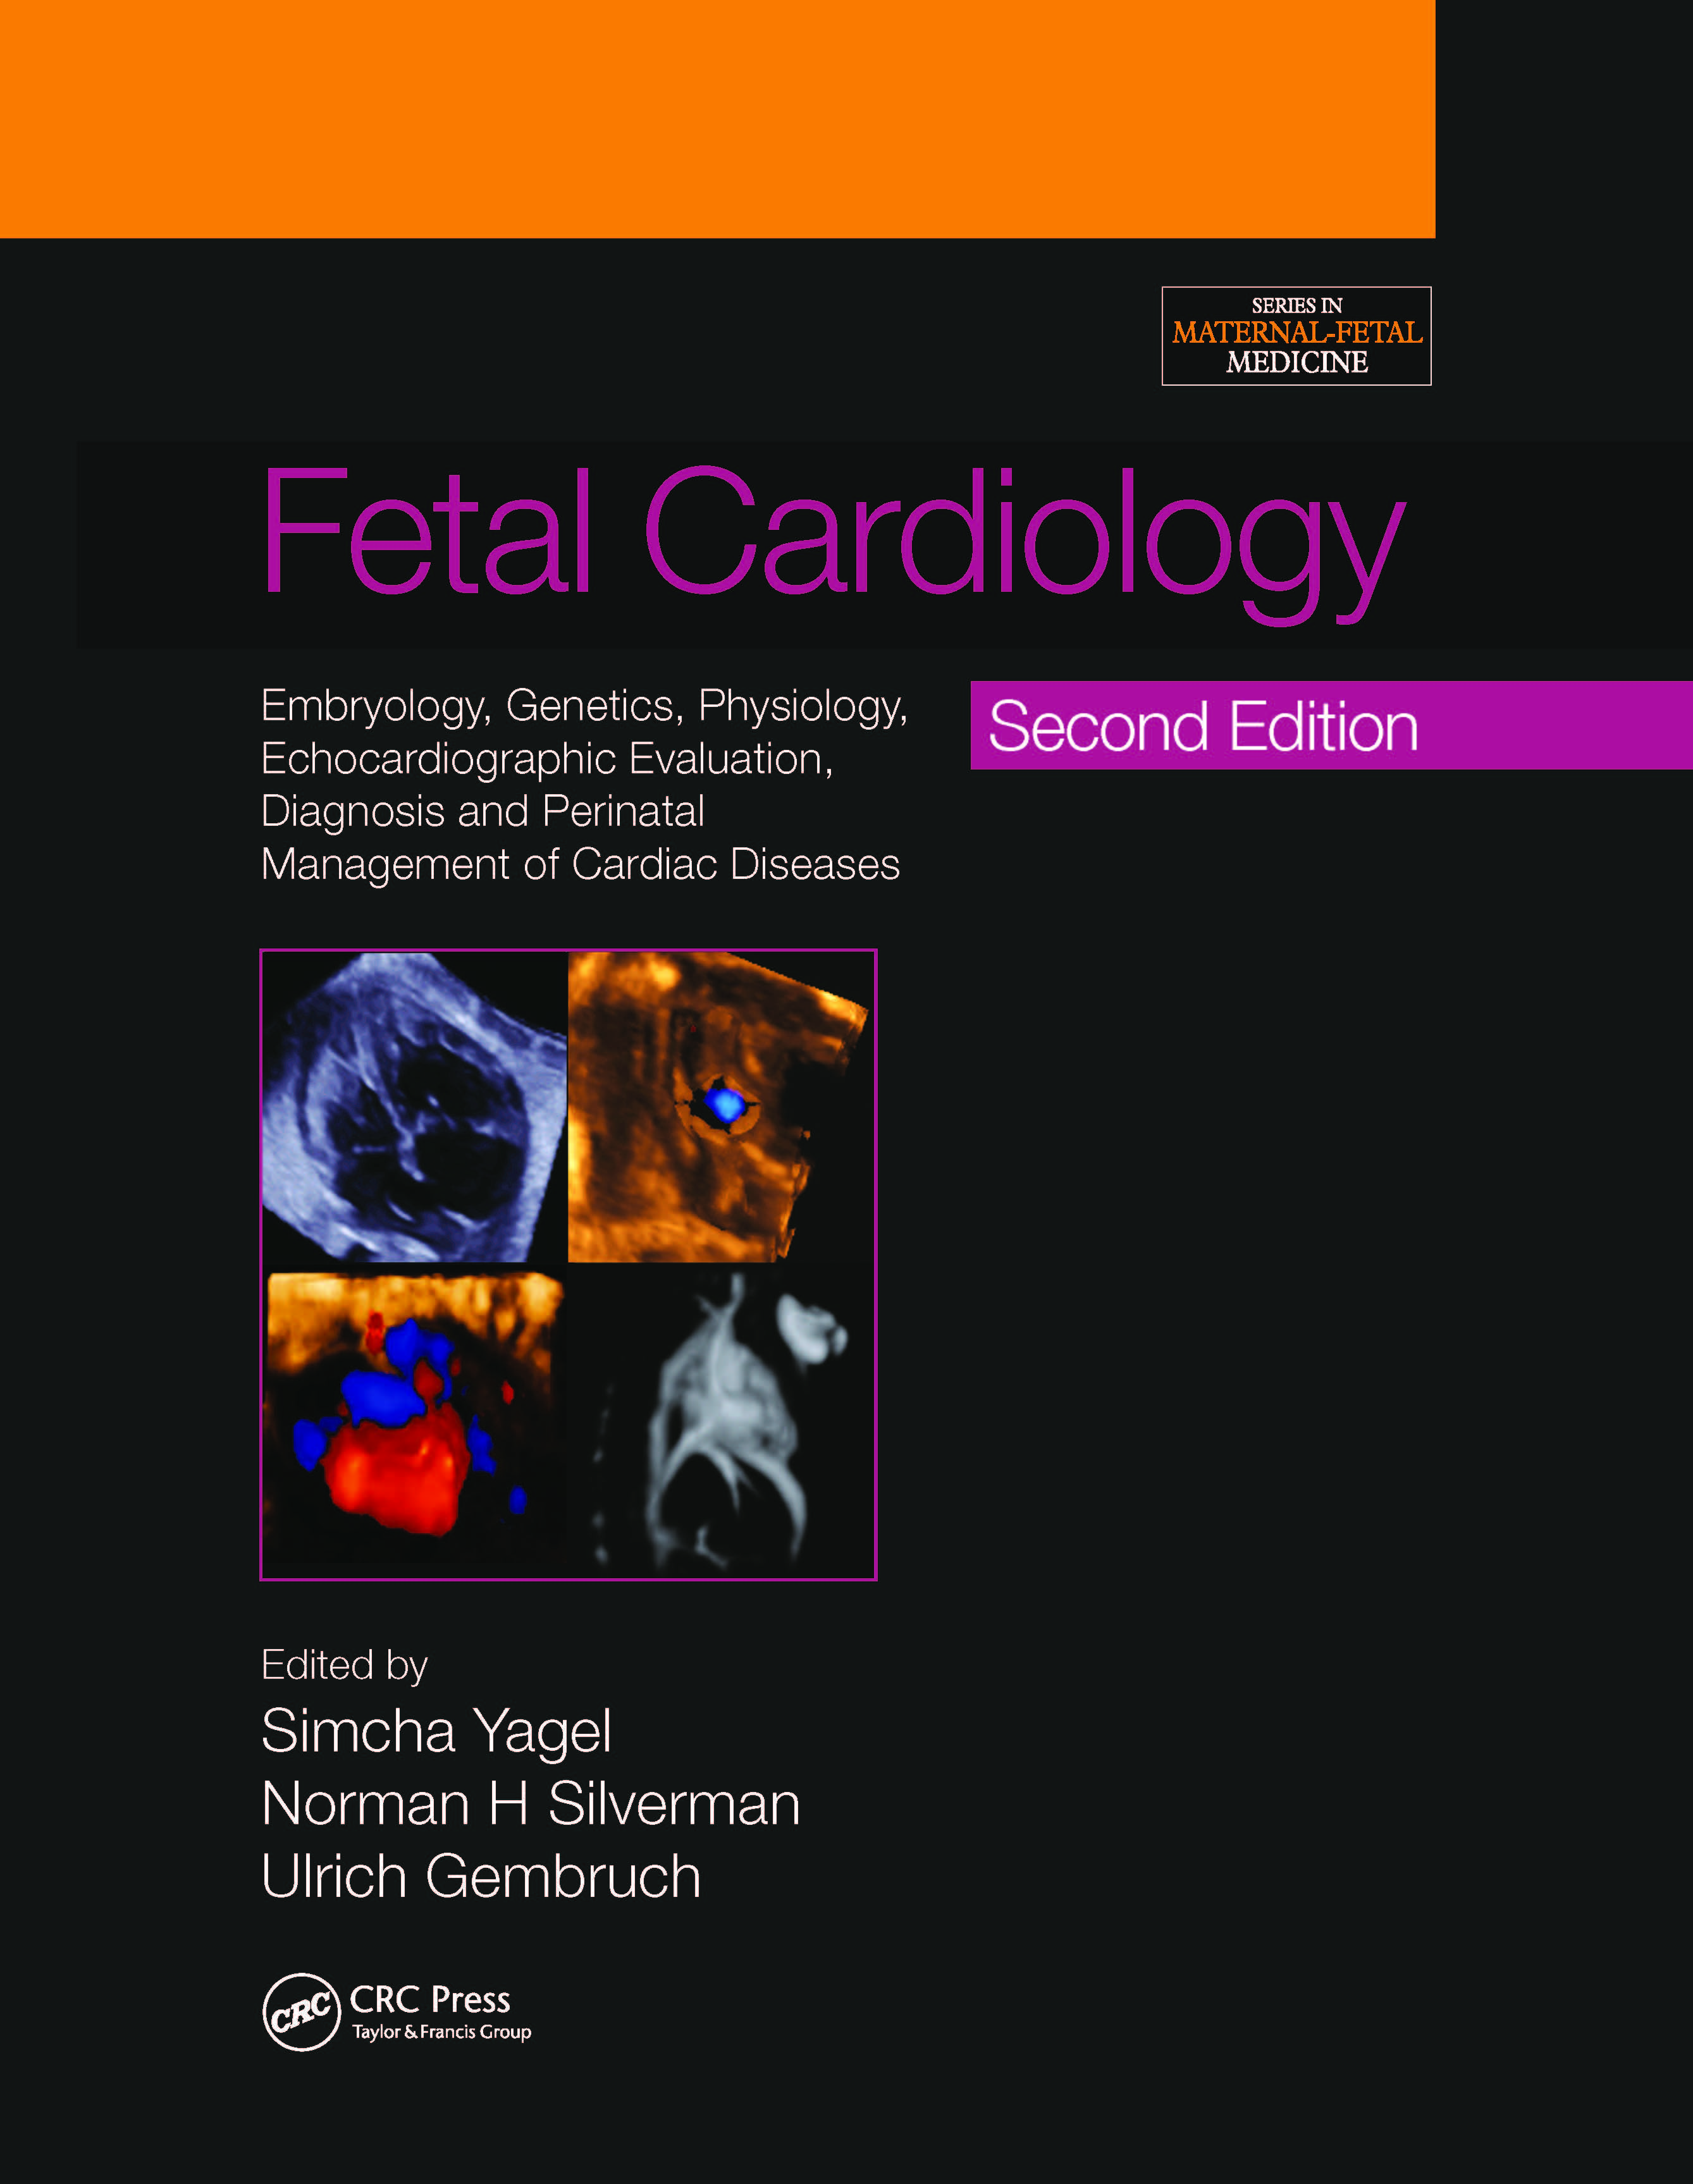 Fetal Cardiology: Embryology, Genetics, Physiology, Echocardiographic Evaluation, Diagnosis and Perinatal Management of Cardiac Diseases book cover